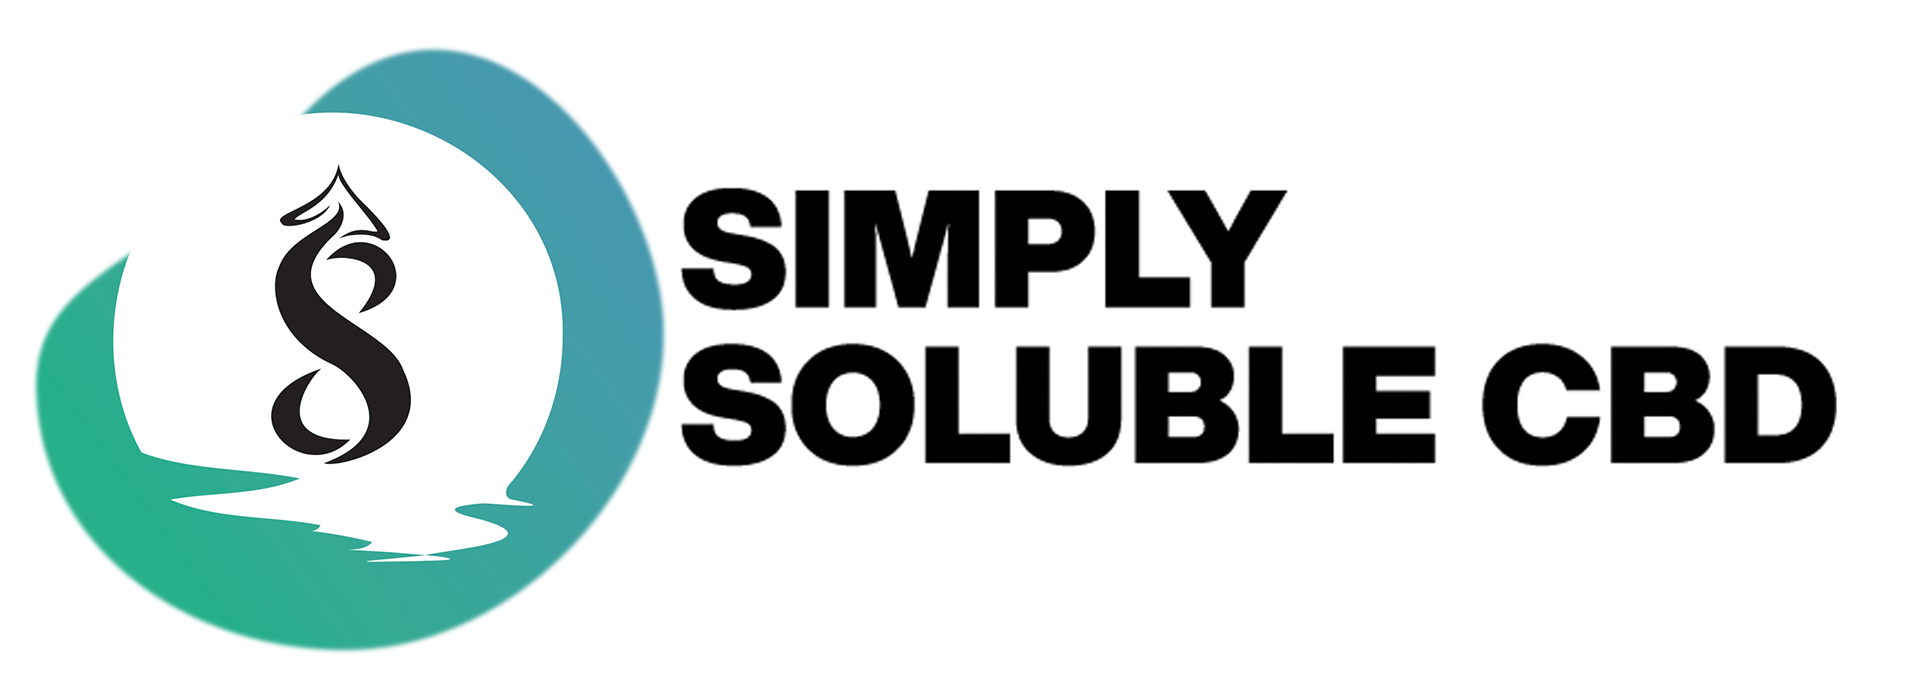 simply-soluble-logo-1.png